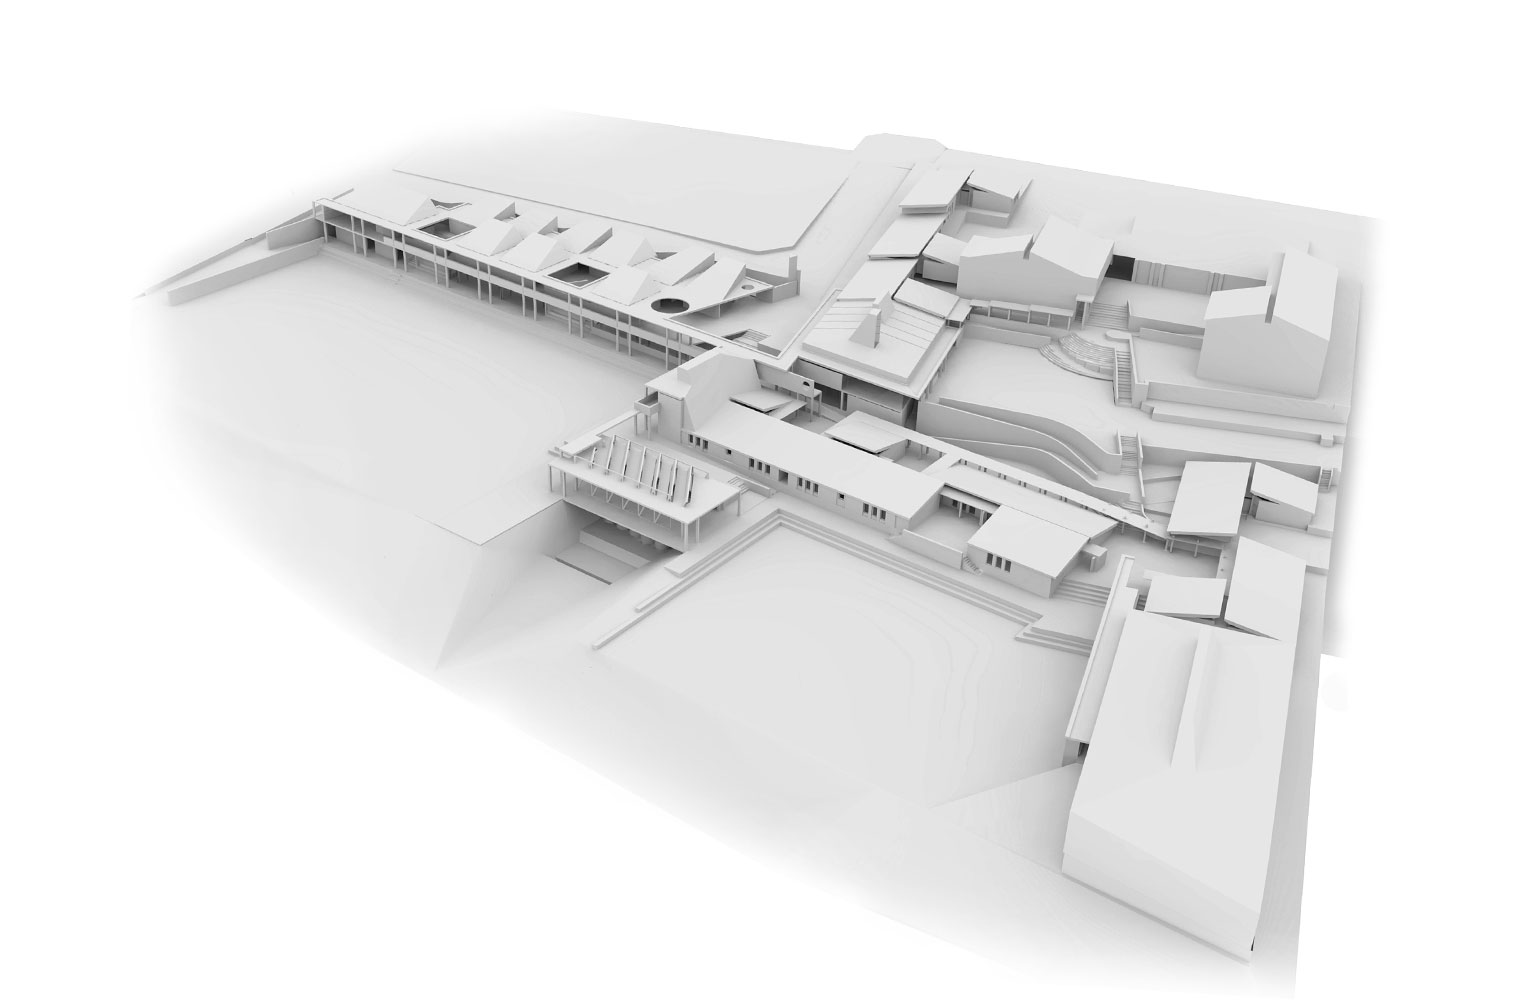 Disa Primary School - Conceptual Model